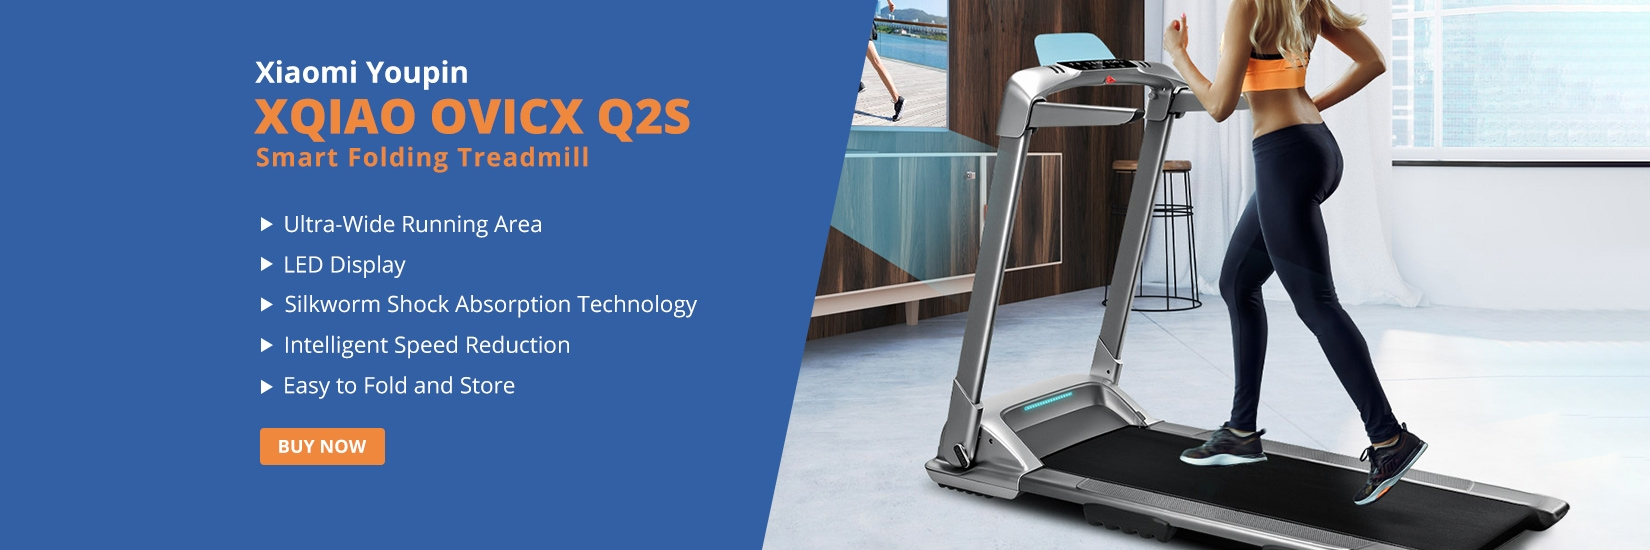 XQIAO OVICX Q2S Smart Folding Treadmill